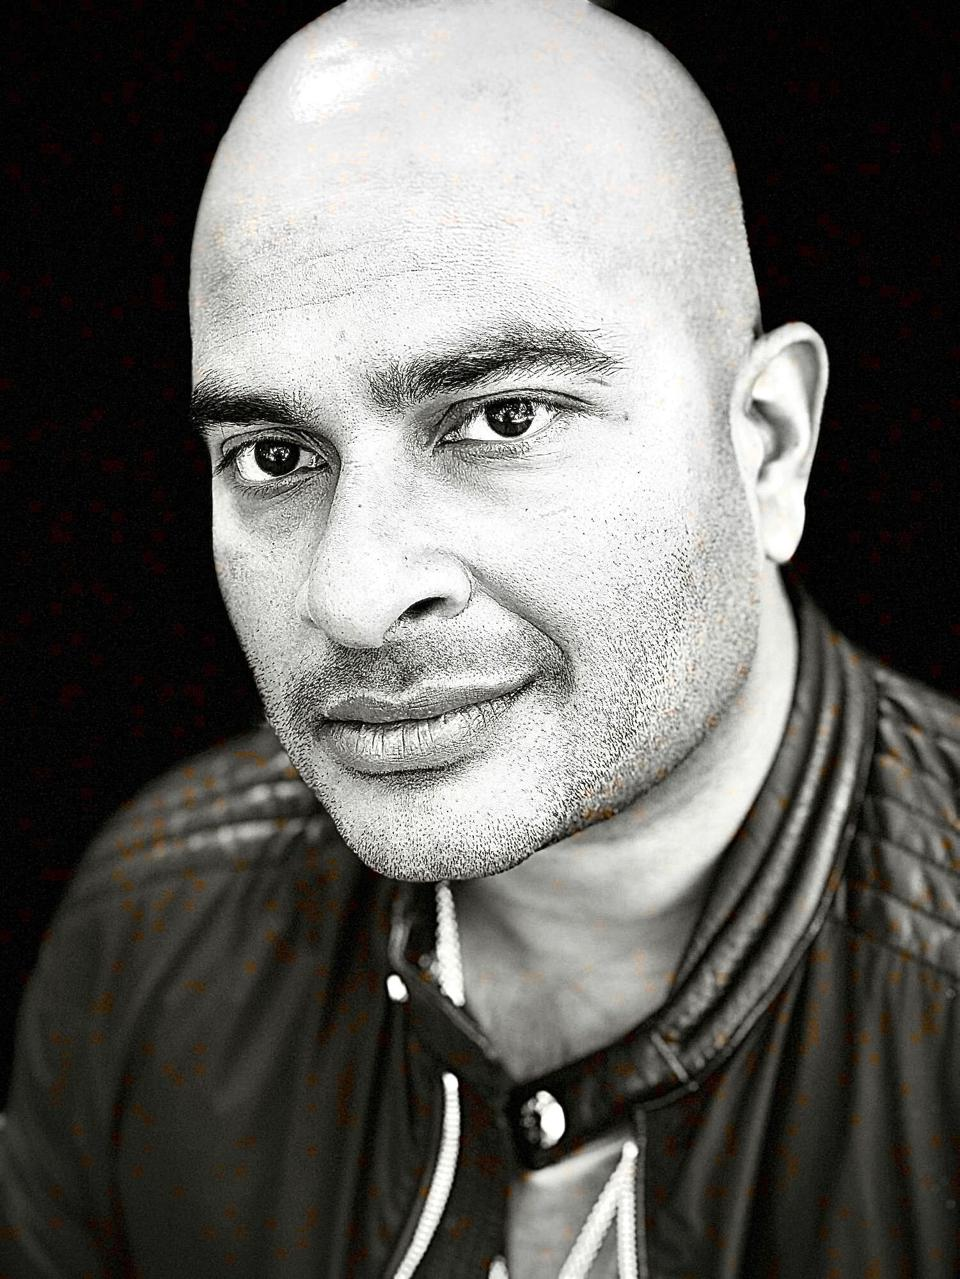 A black and white headshot of a bald man in a dark jacket